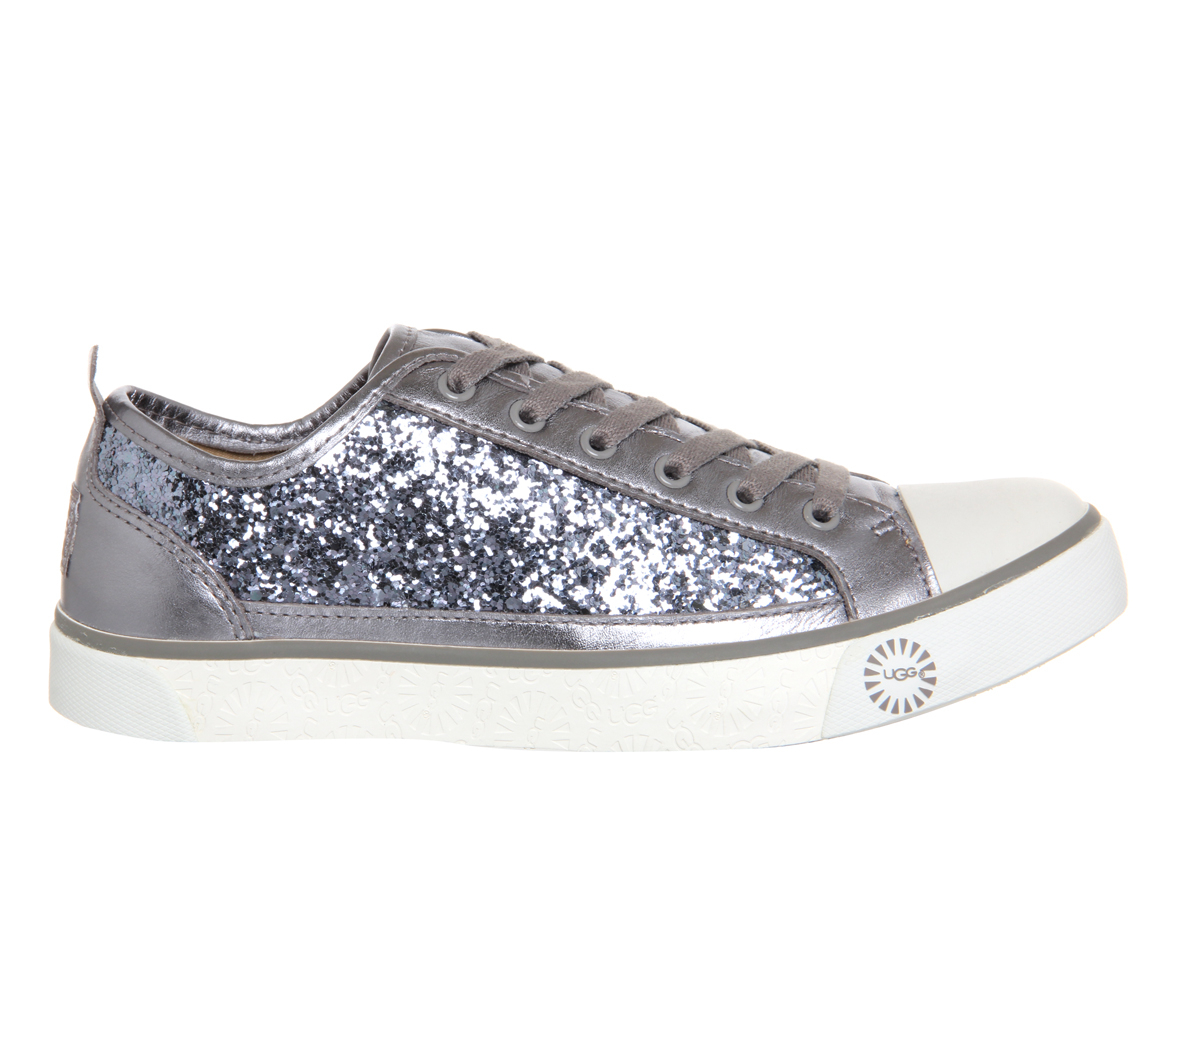 Ugg Evera Glitter Sneaker In Metallic Lyst